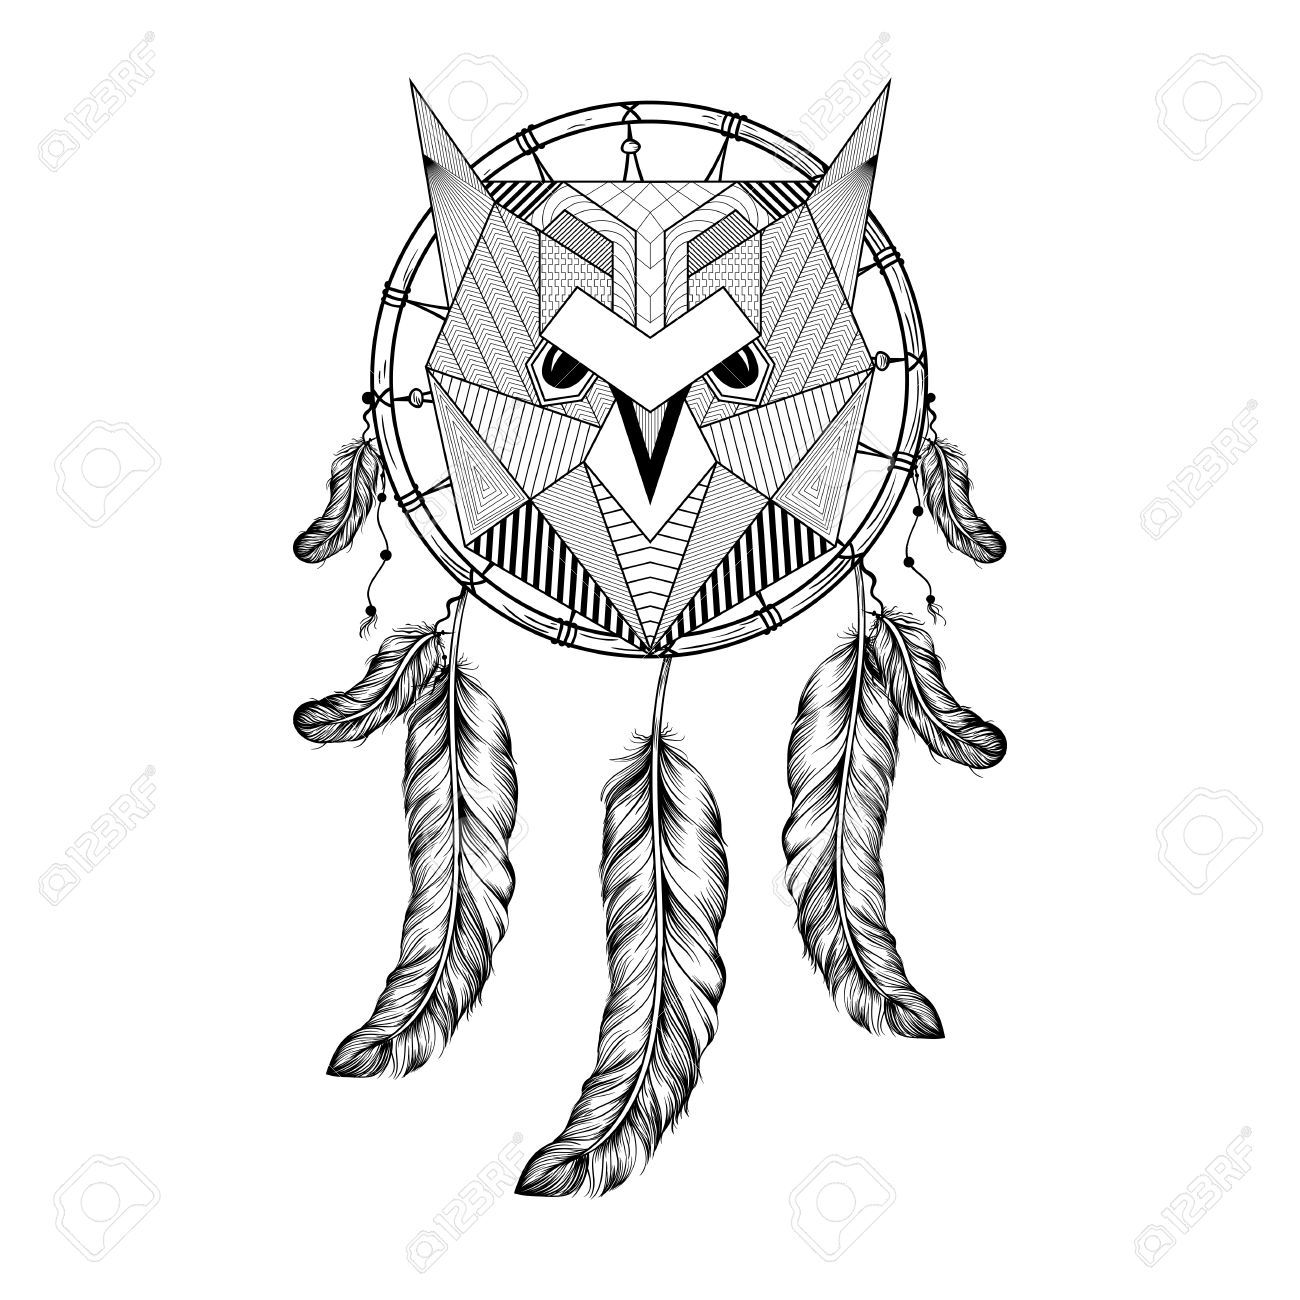 Coloring pages dream catchers - Hand Drawn Owl Bird On Dream Catcher With Feathers For Adult Coloring Pages Art Therapy